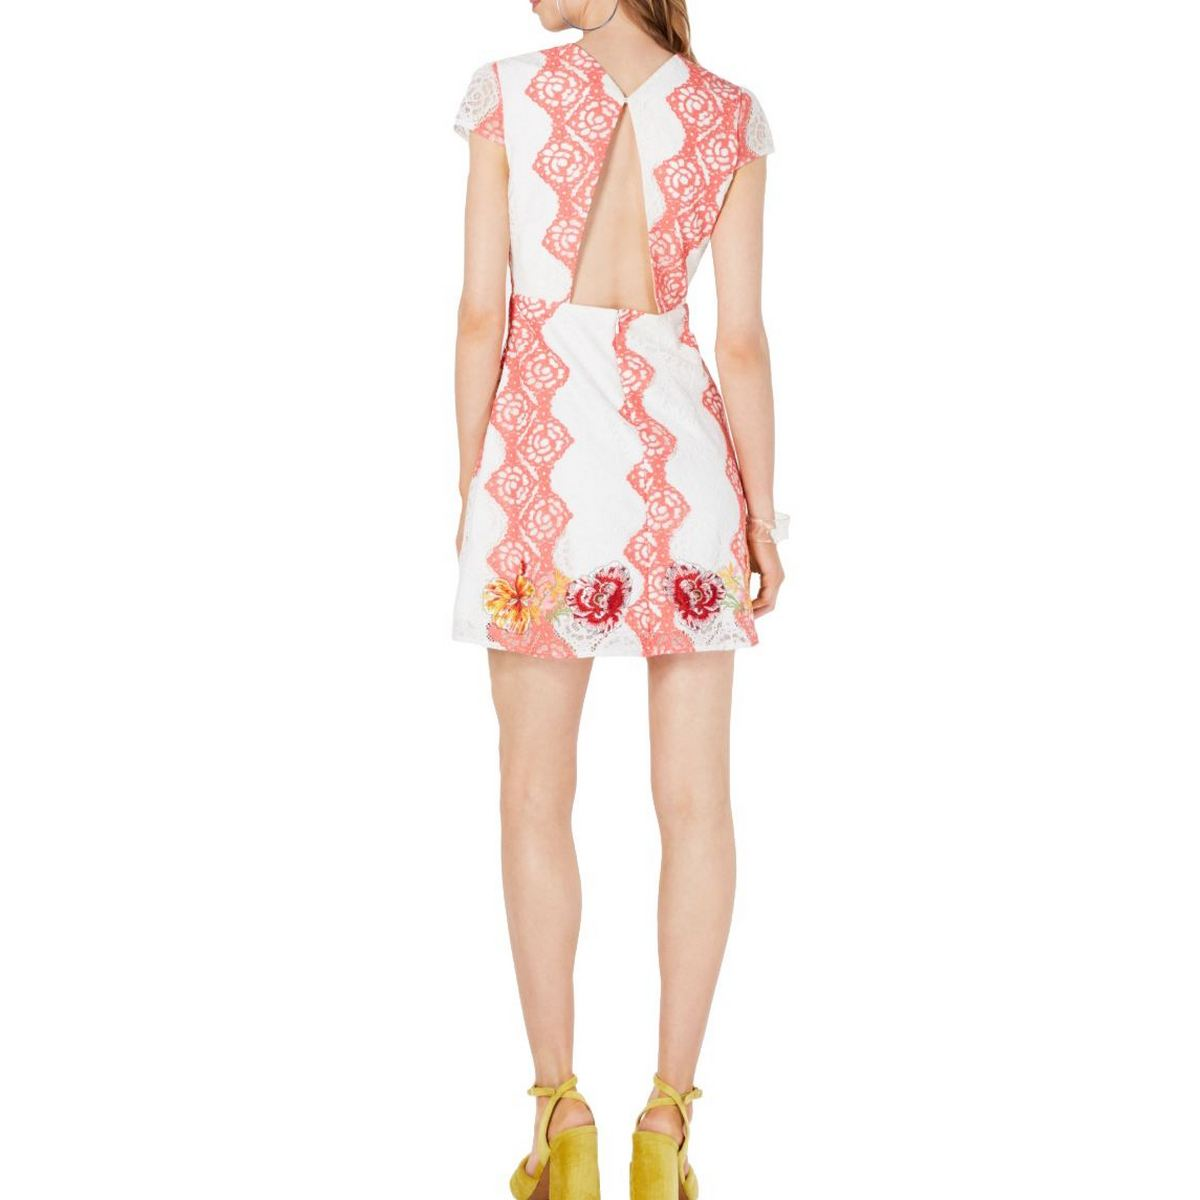 FOXIEDOX NEW Women/'s Embroidered Lace Open-back A-Line Dress TEDO